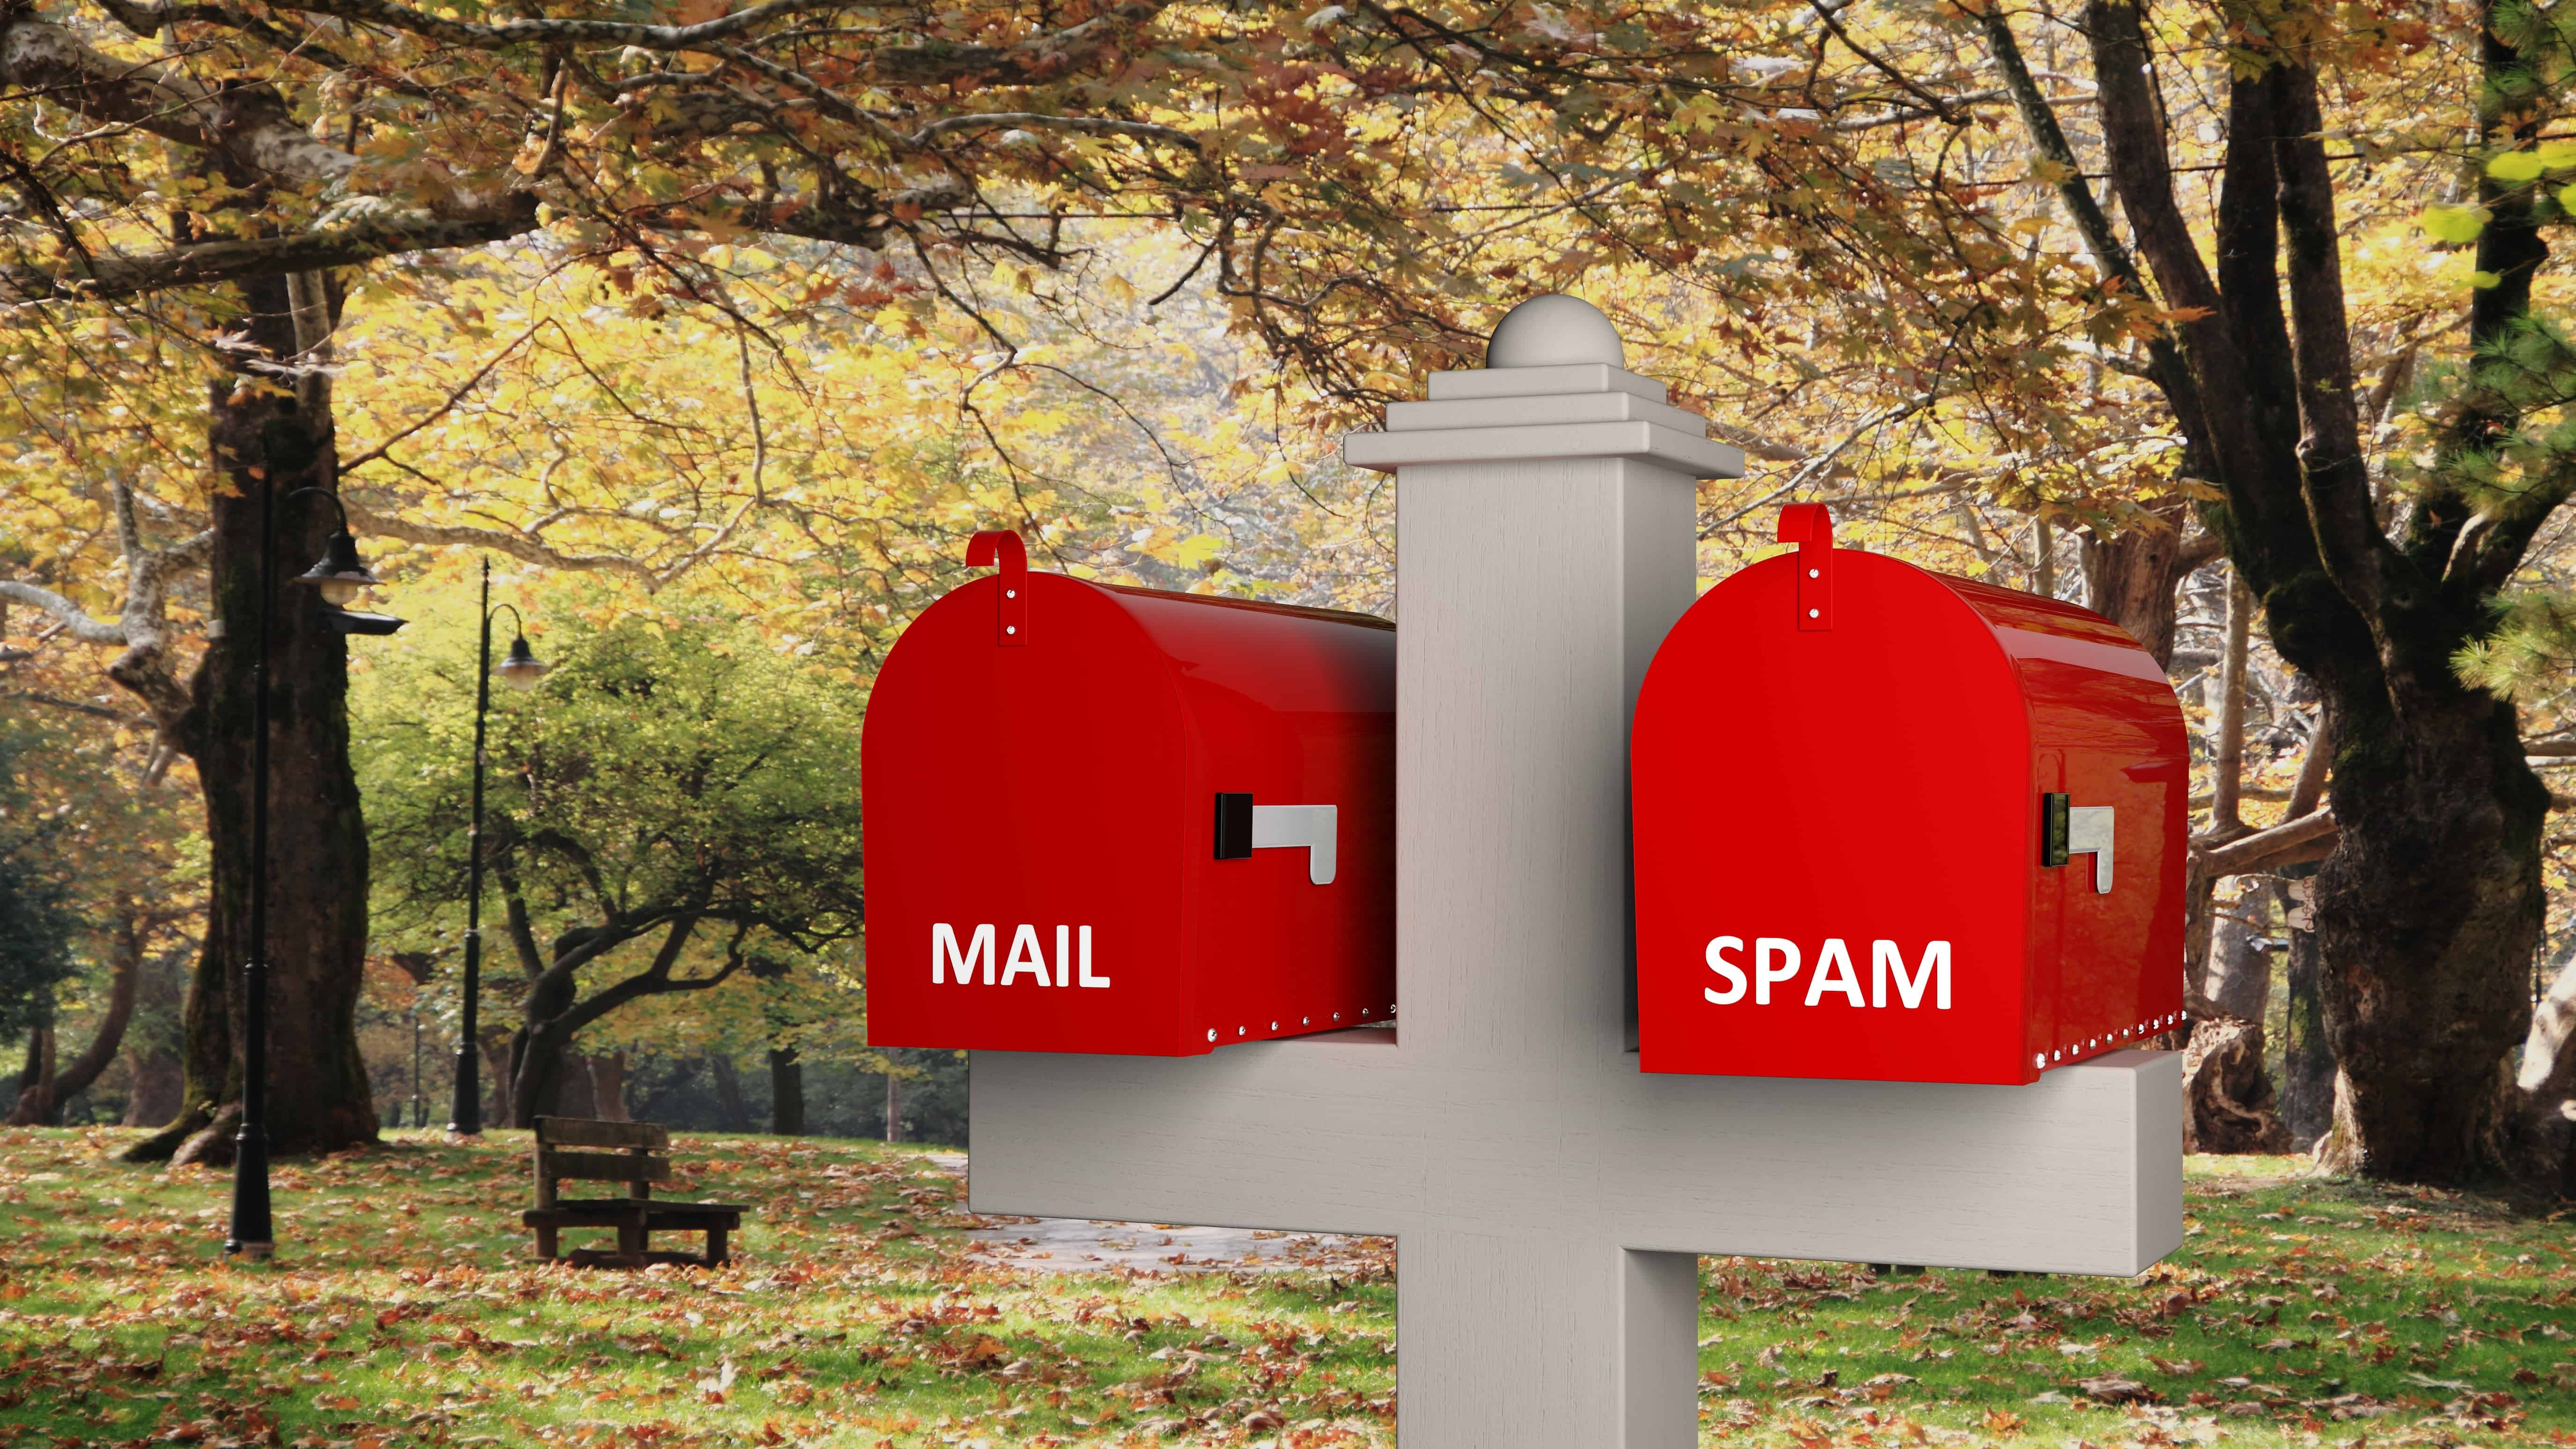 Tw Mailboxes Spam and Regular